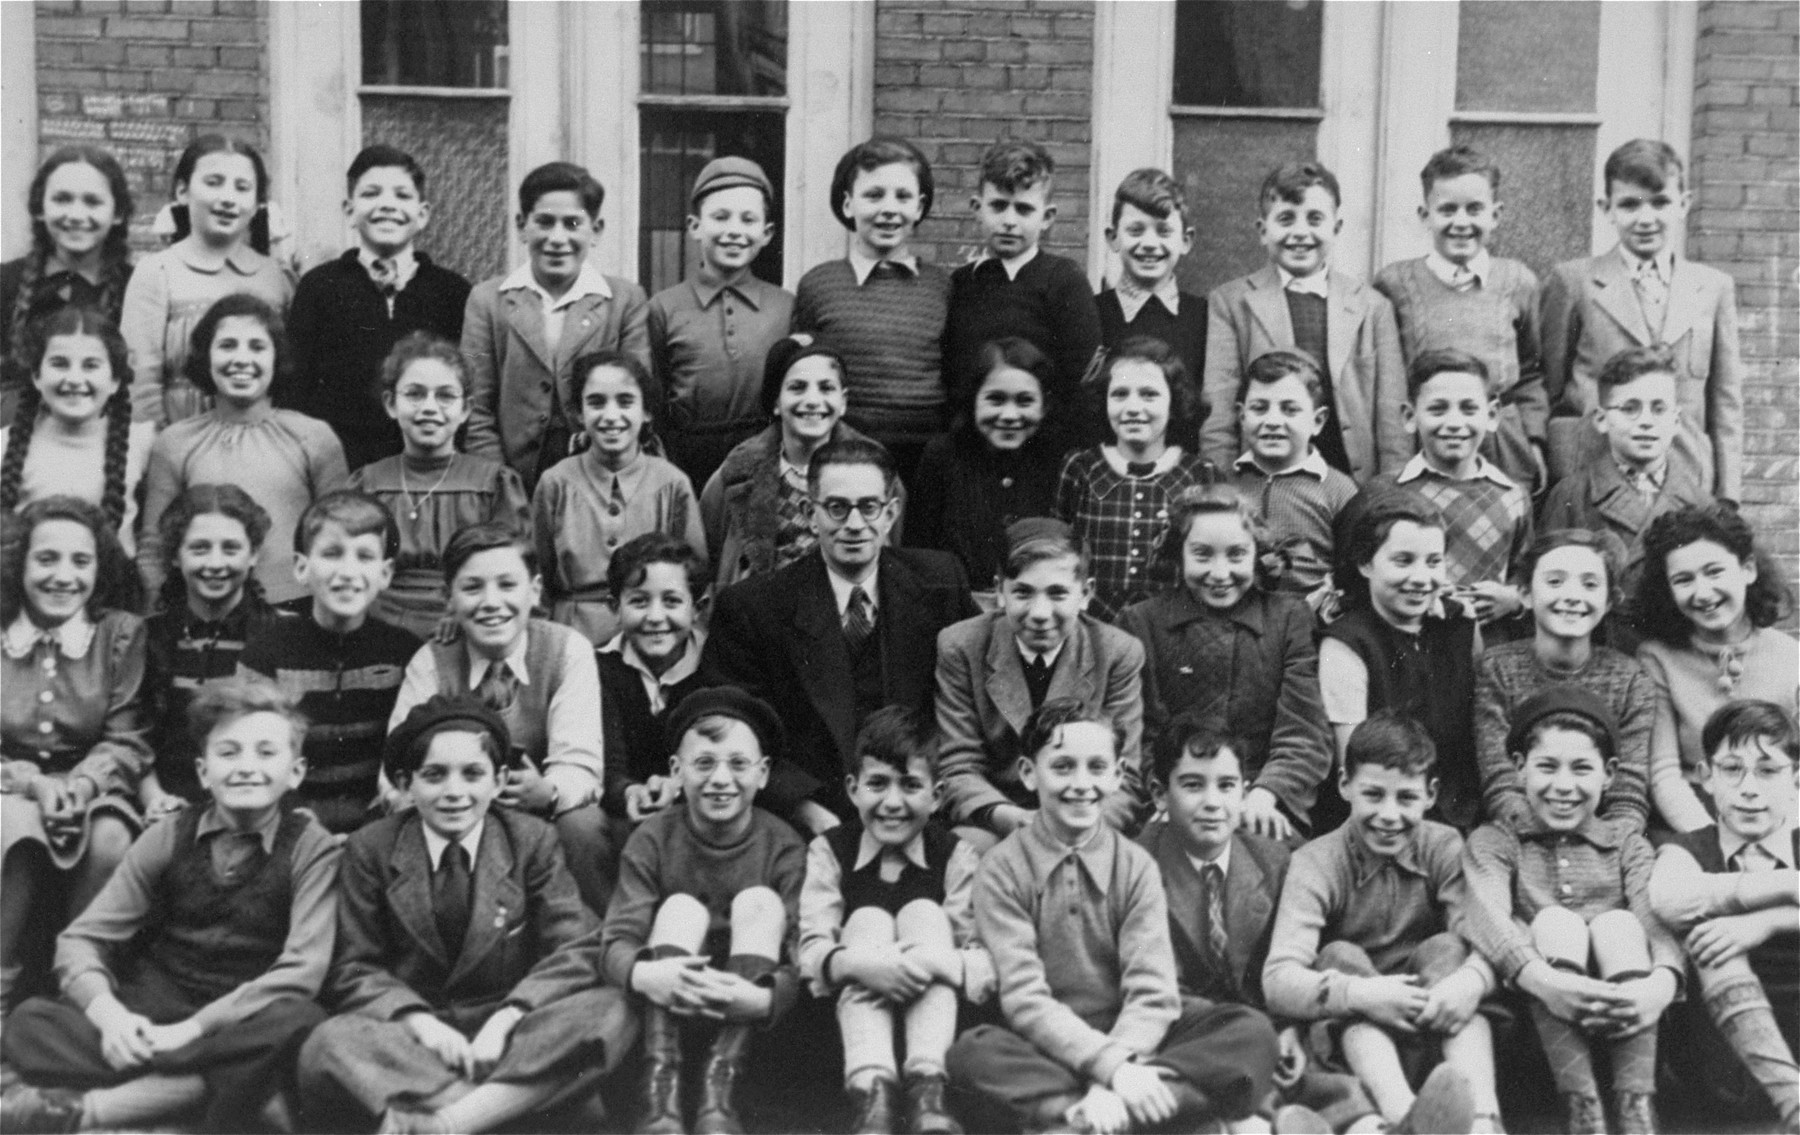 Third grade class at Rosh Pina Hebrew Day School where Marion Kaufmann was a student.    She is last on the right in the second row from the bottom.  Most of these children left by Kinder Aliyah to Israel.